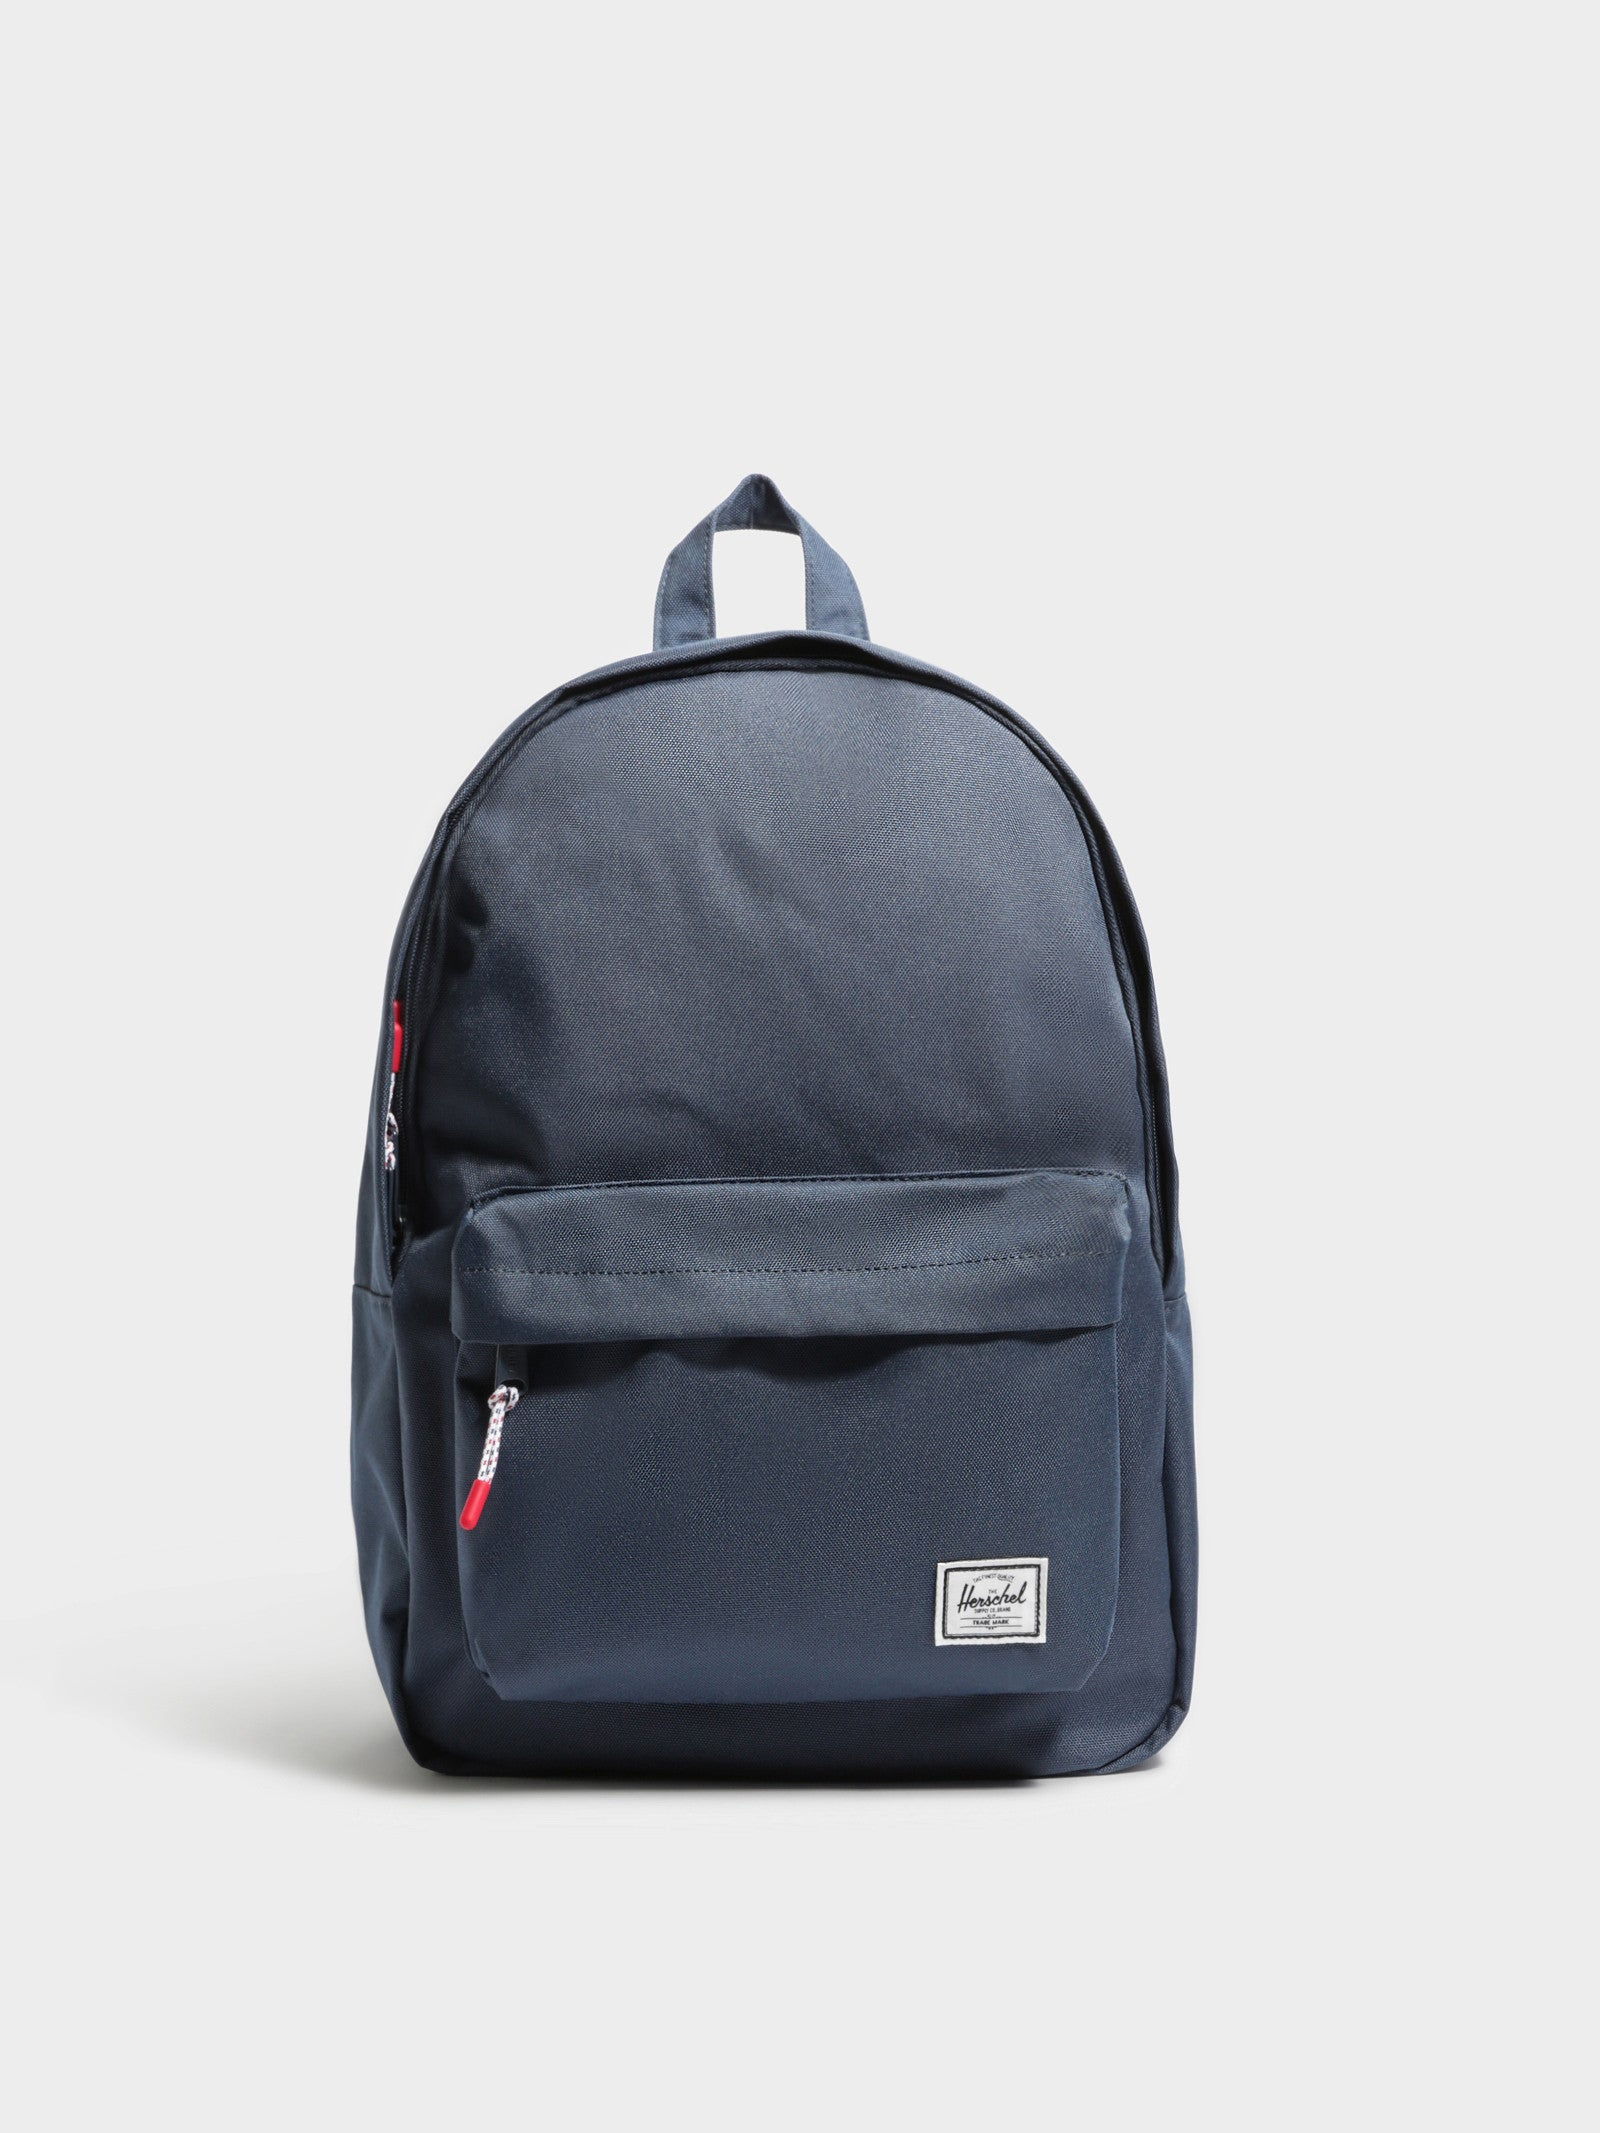 24L Classic Backpack in Navy